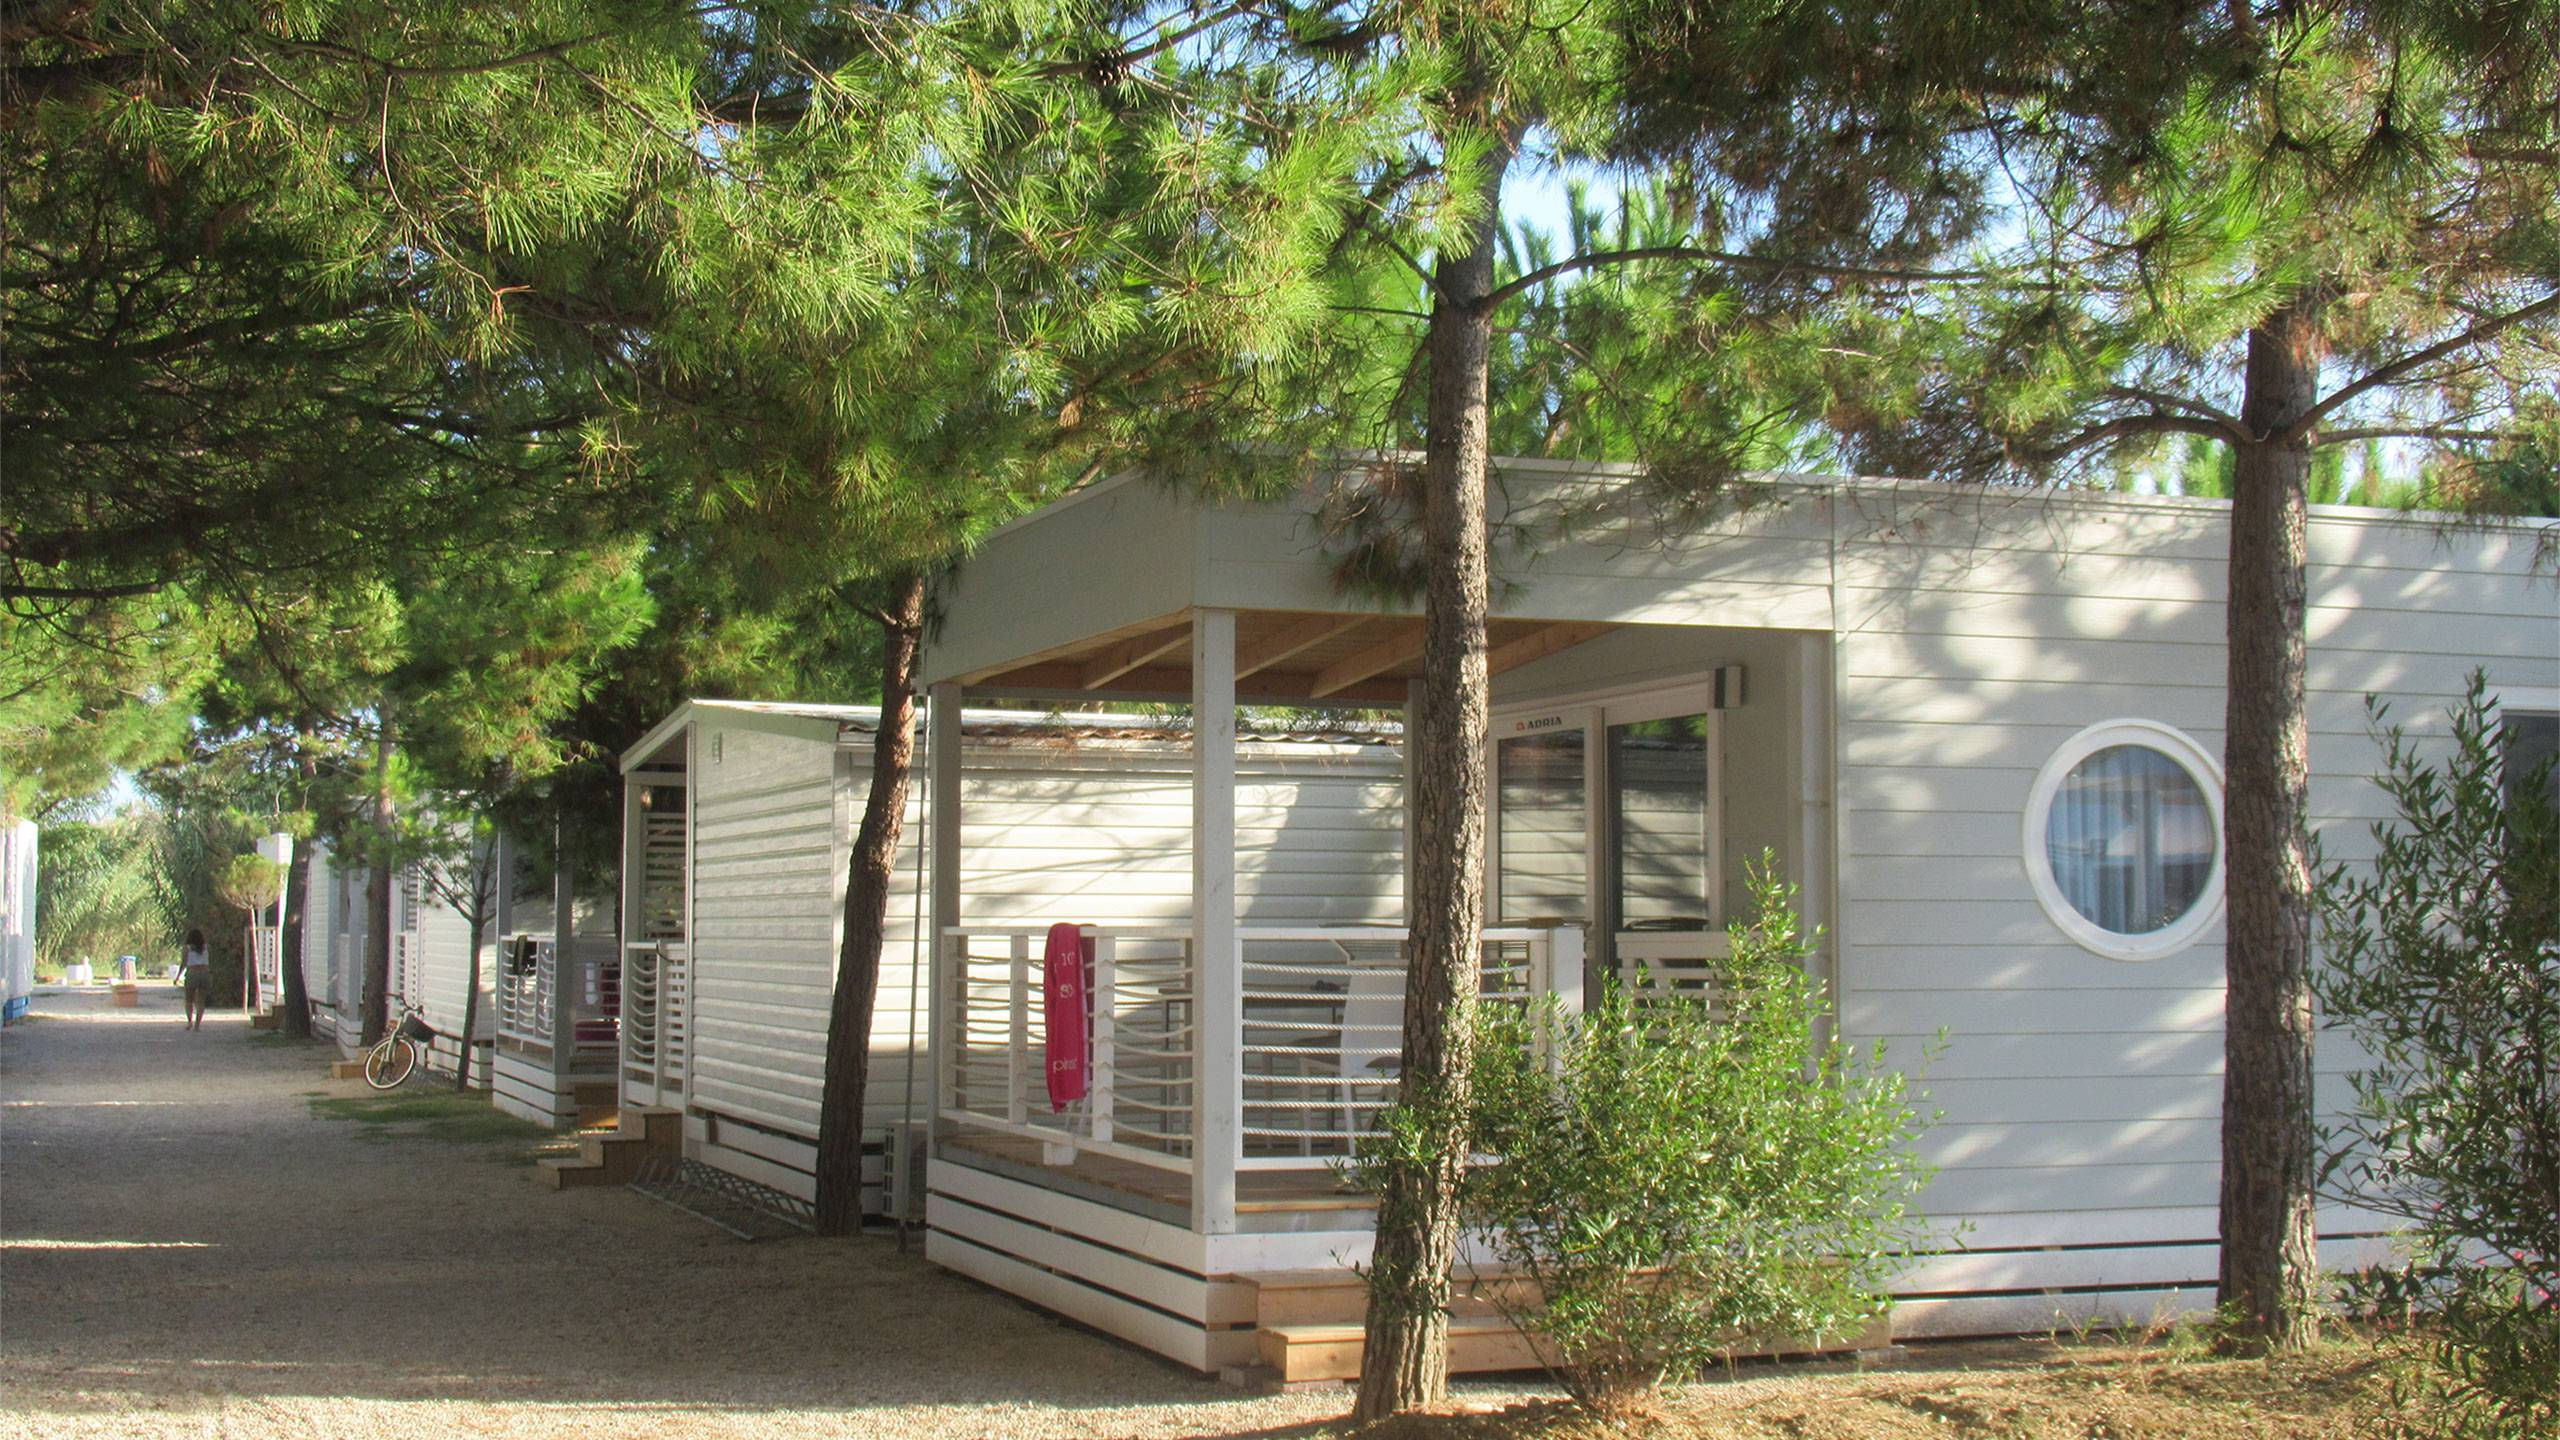 Pineto-beach-village-e-camping-loft-4005